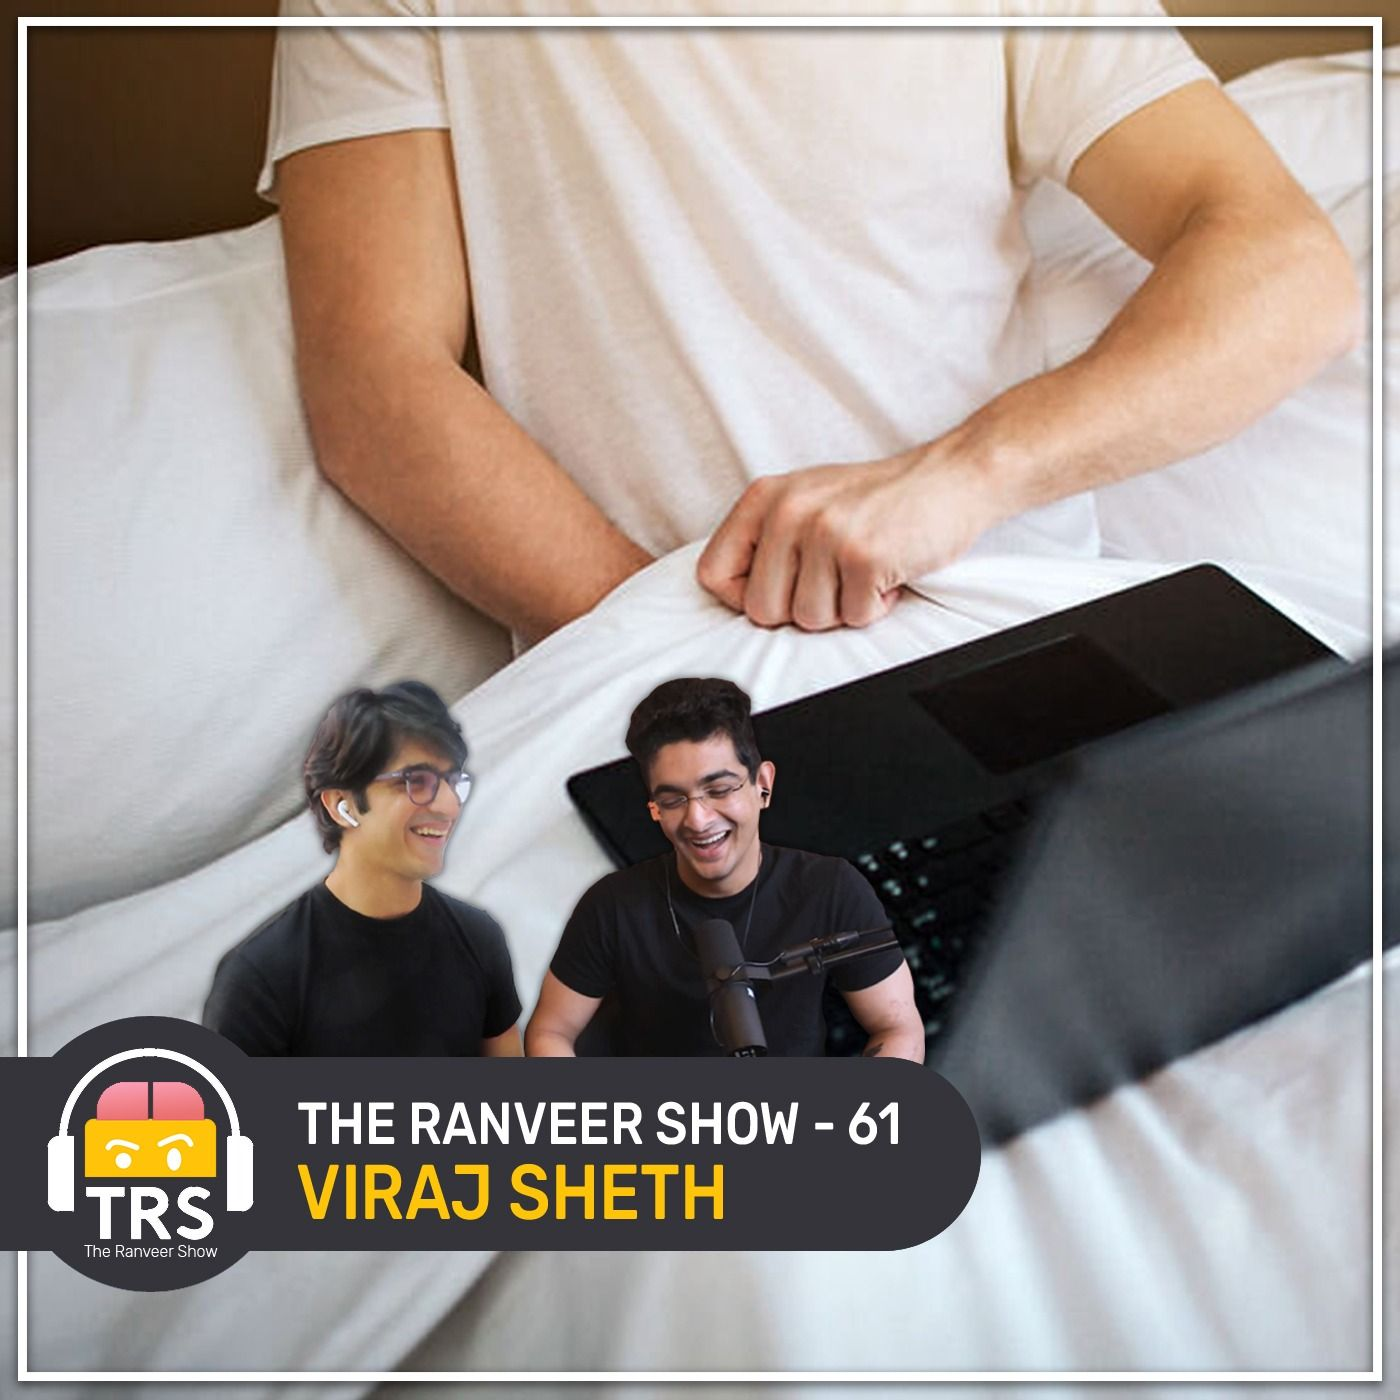 """200 Days without Masturbation Changed Me Forever."" - Viraj Sheth 